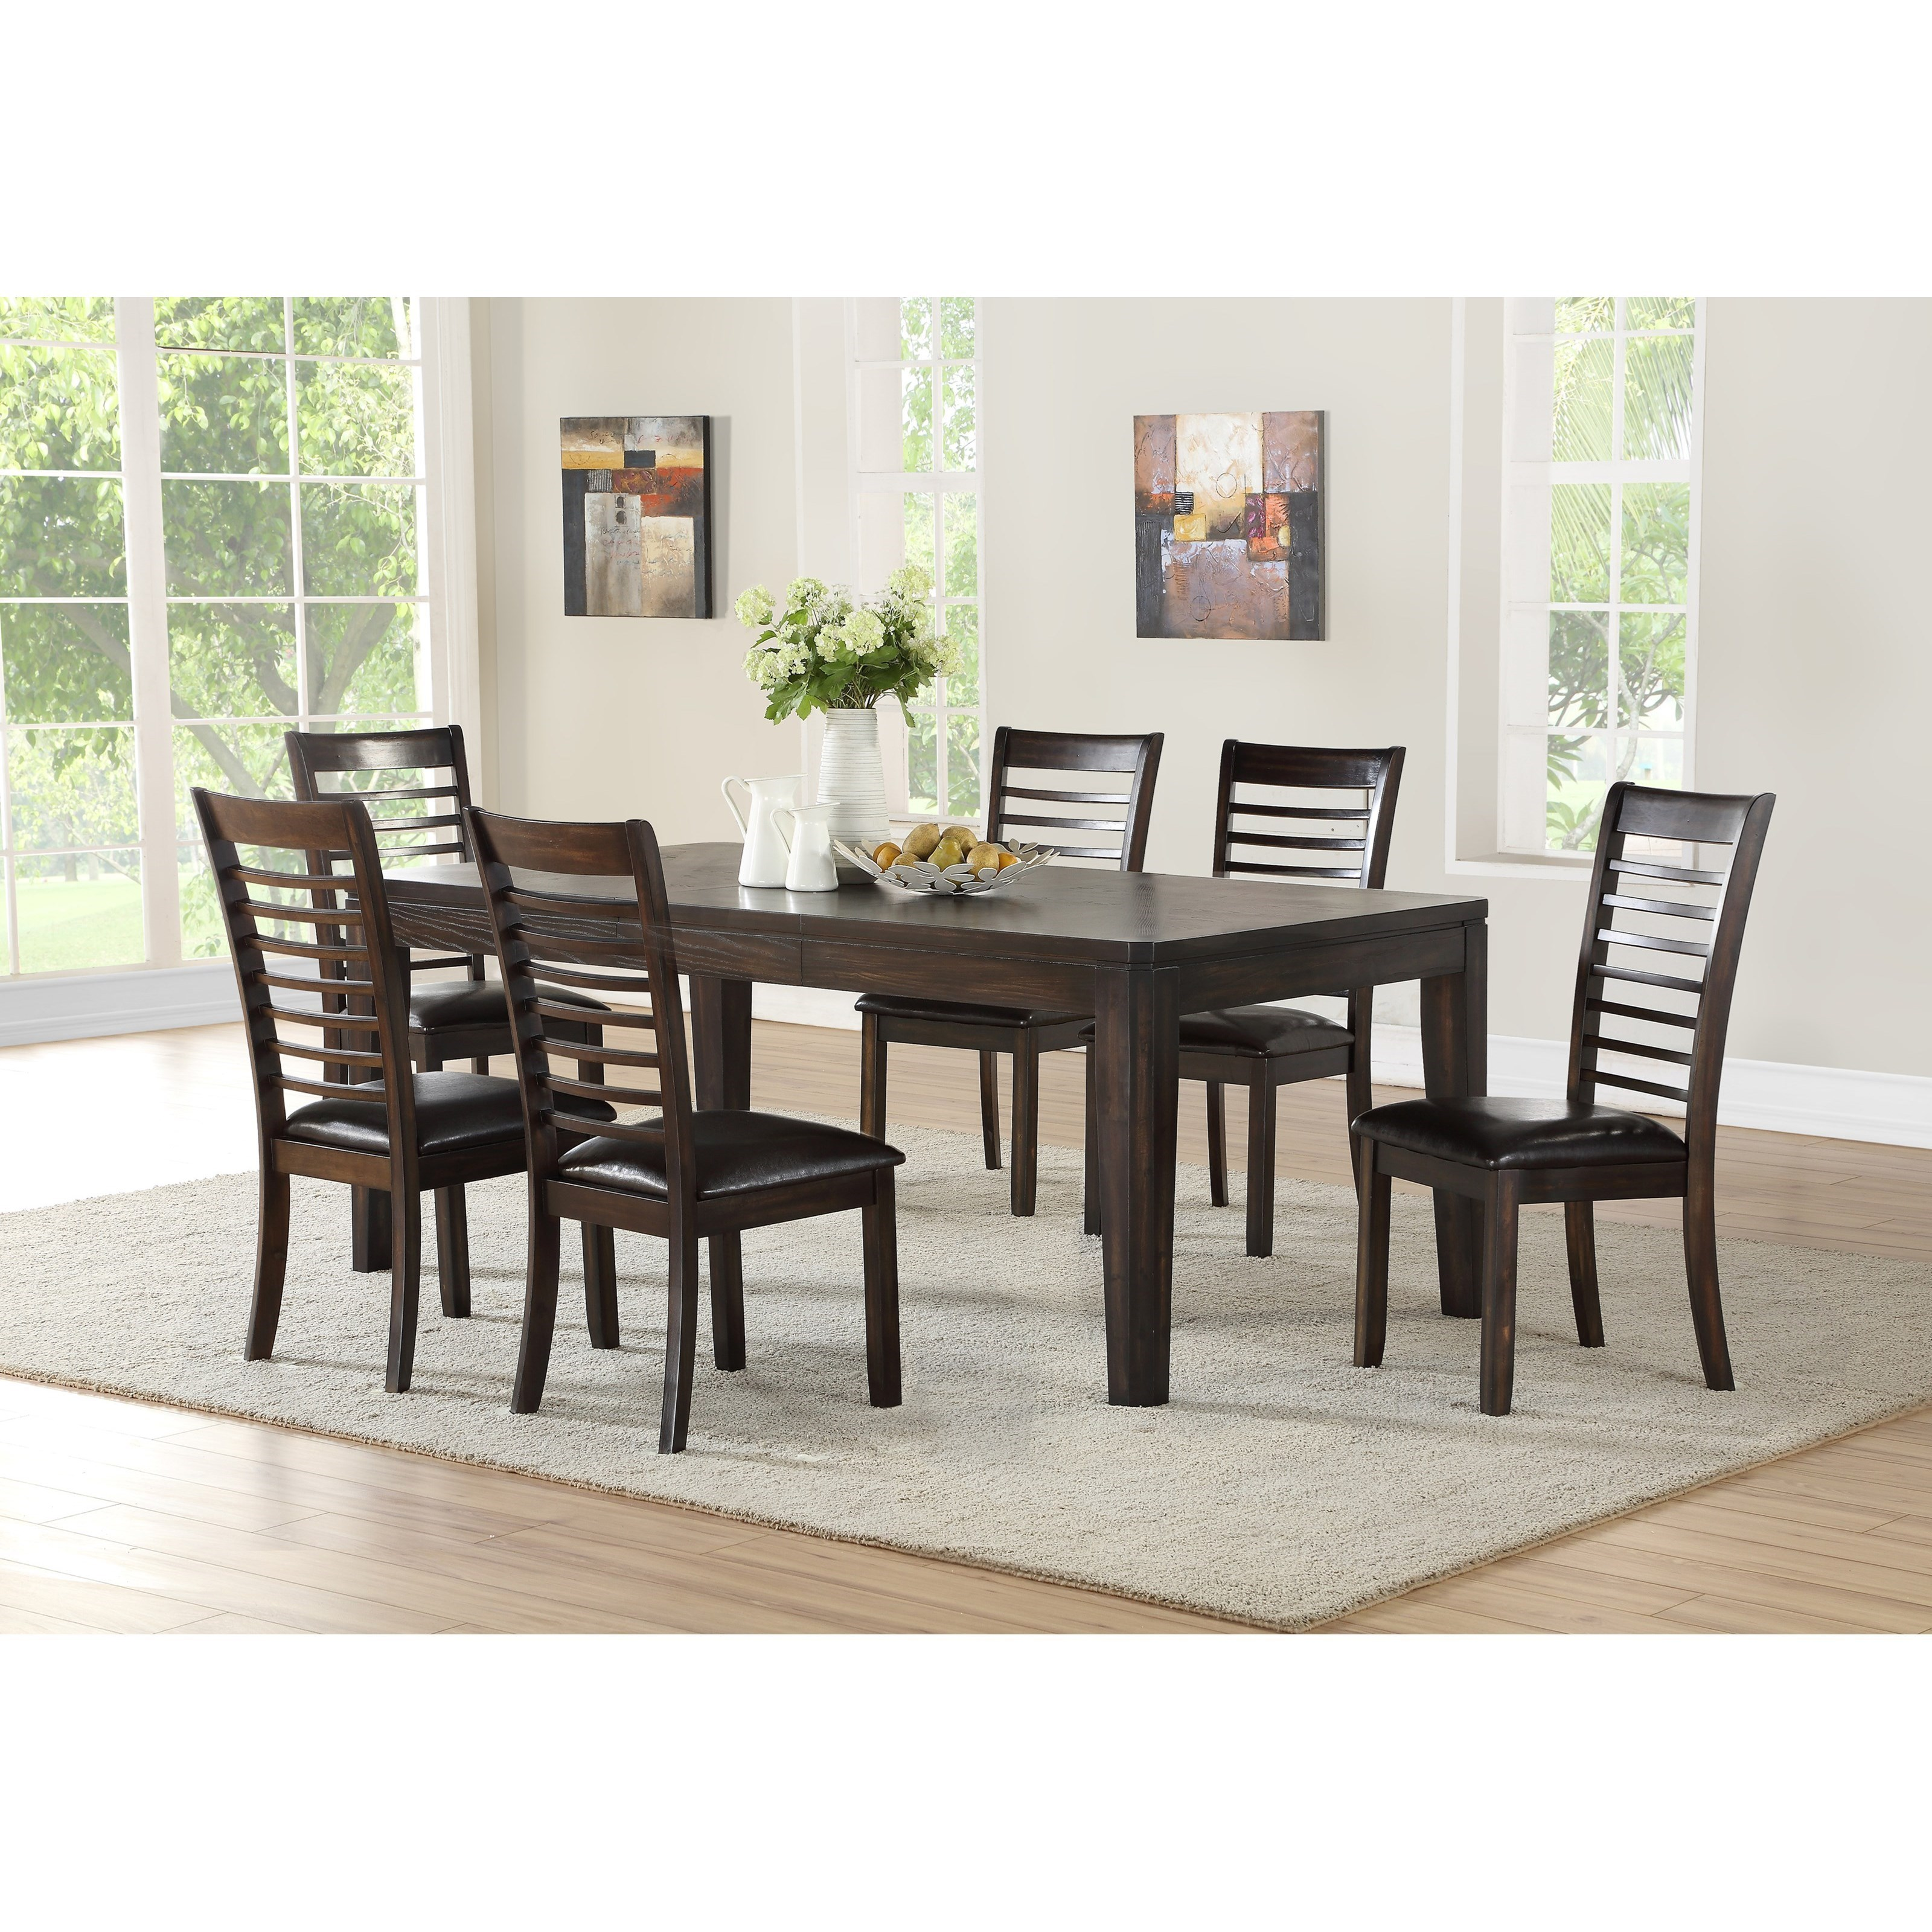 Casual 7 Piece Table and Upholstered Chair Set